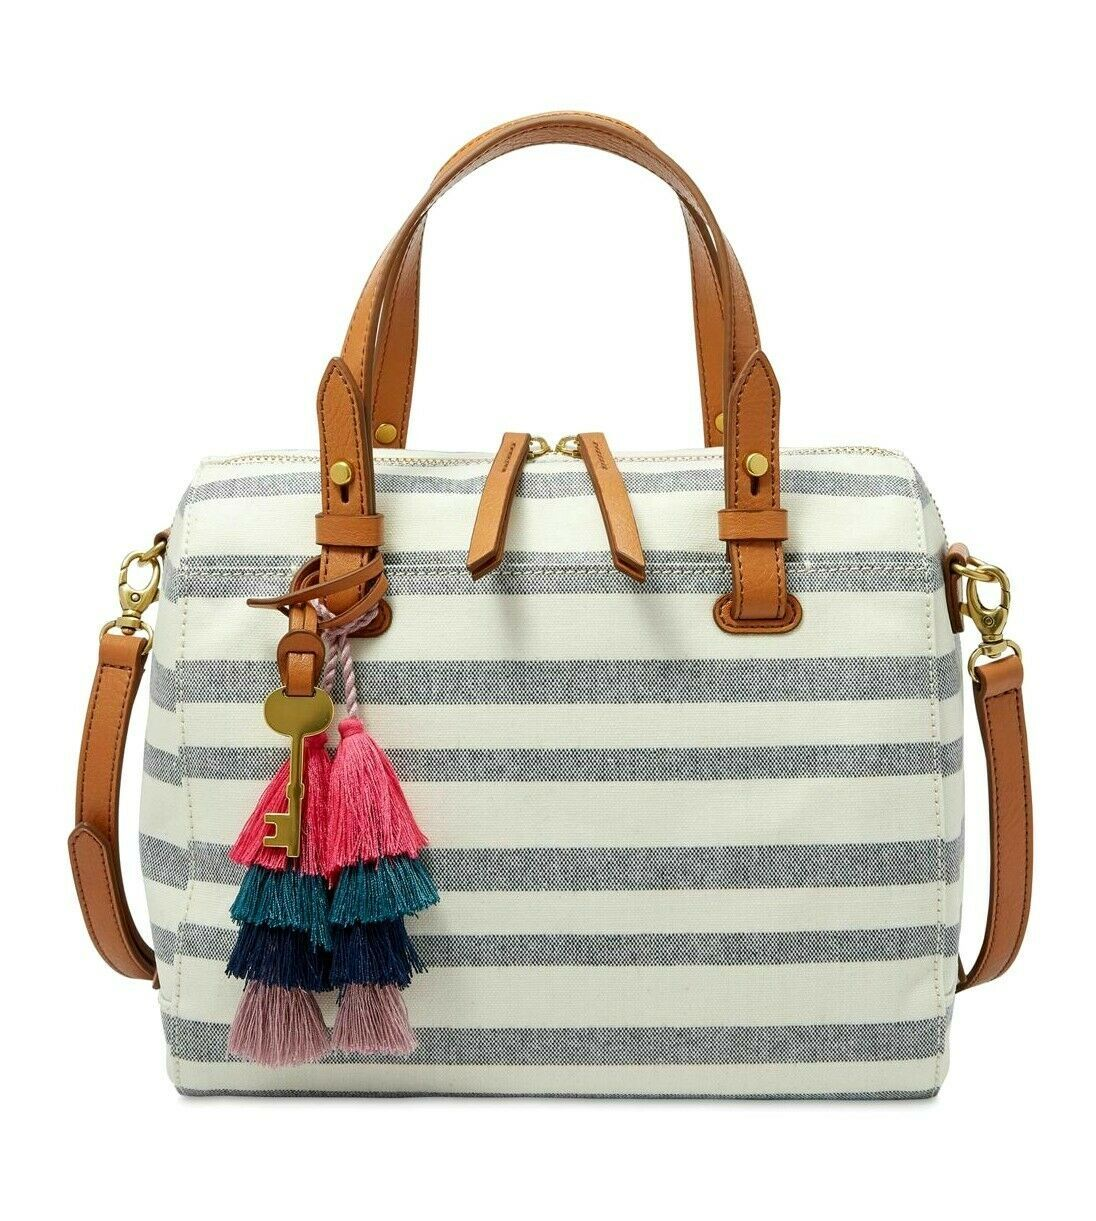 Primary image for New Fossil Women's Rachel Satchel Bags Variety Colors